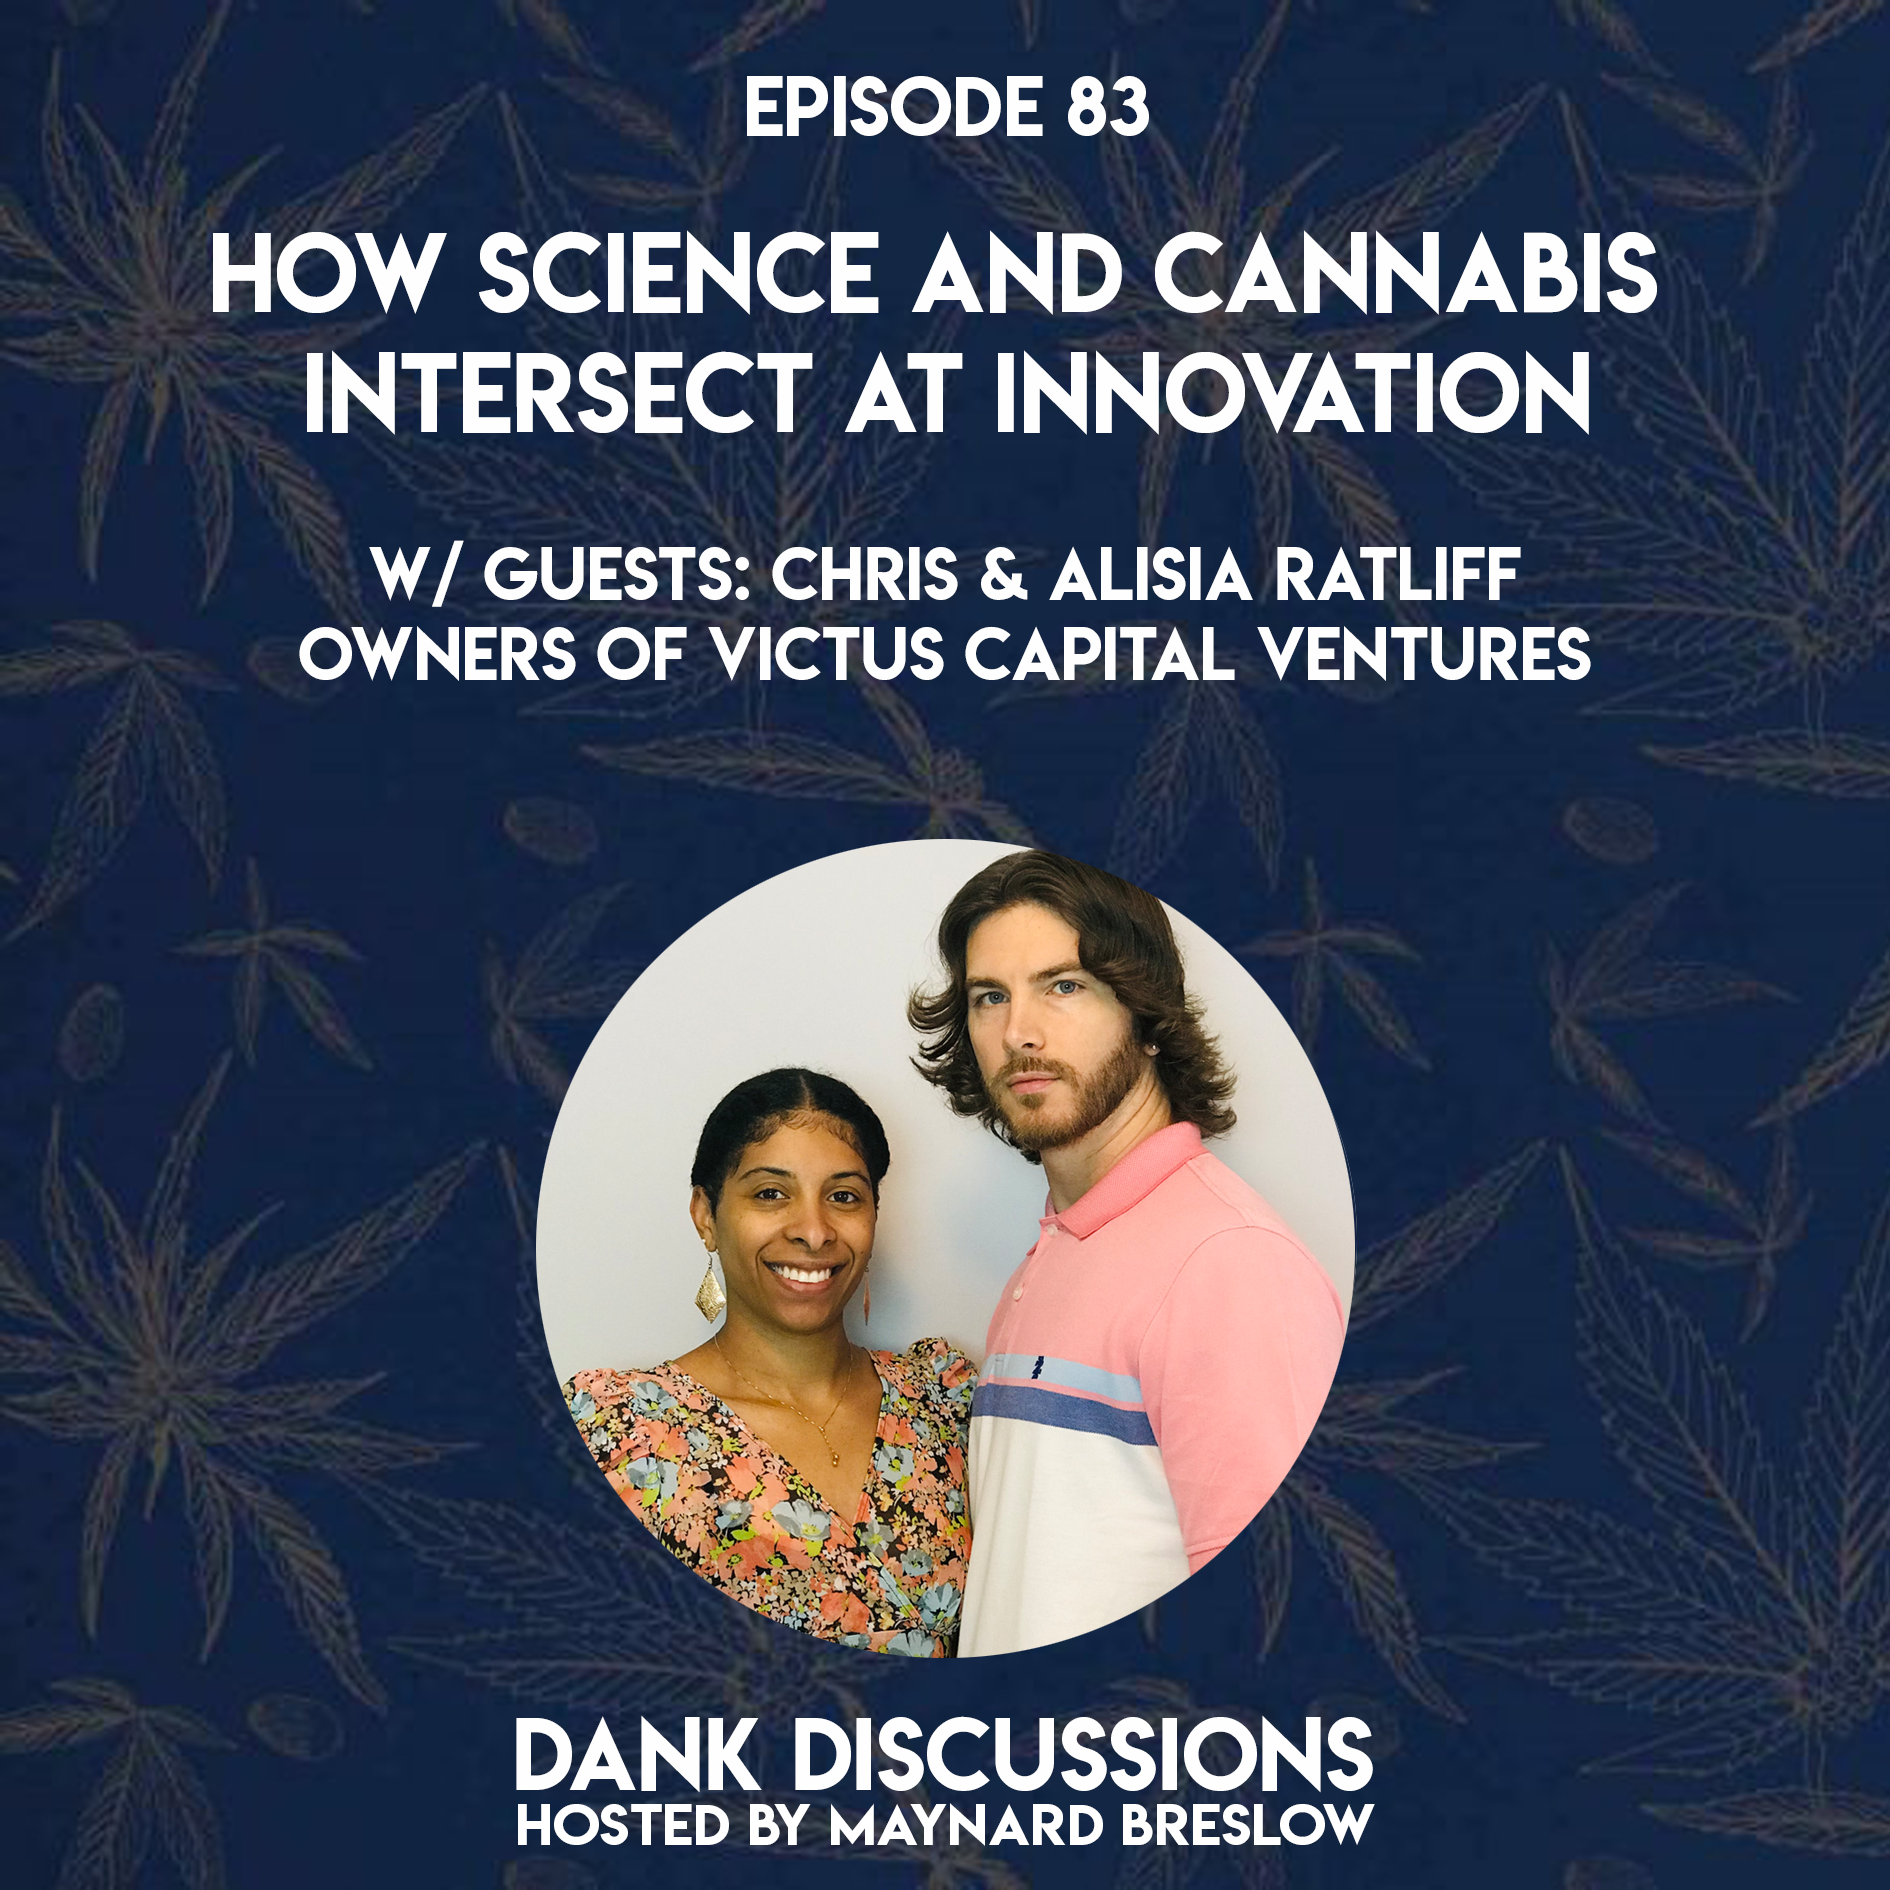 How Science and Cannabis Intersect at Innovation